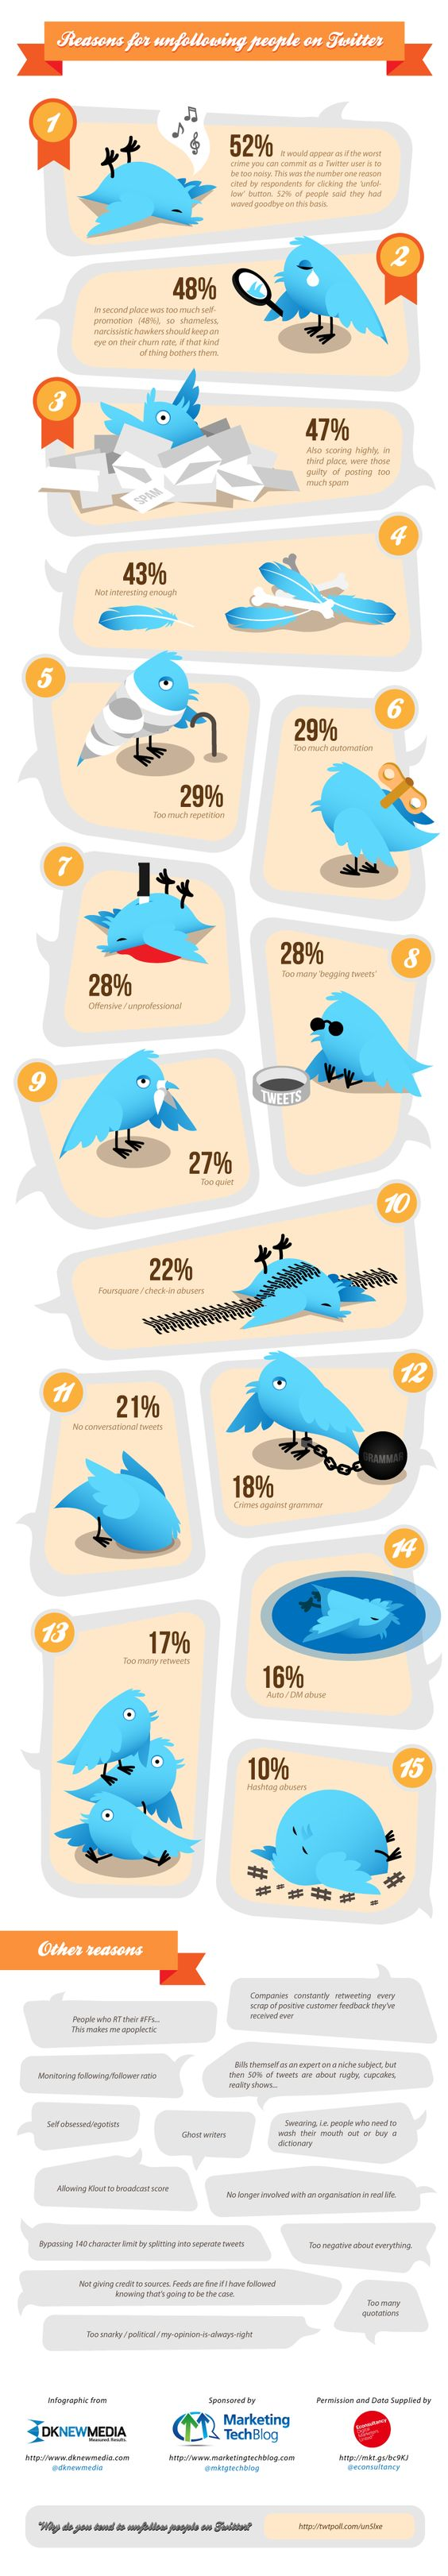 15 Reasons You Were UNfollowed on Twitter: Brutal honesty but good tips to remember when crafting those 140 characters!